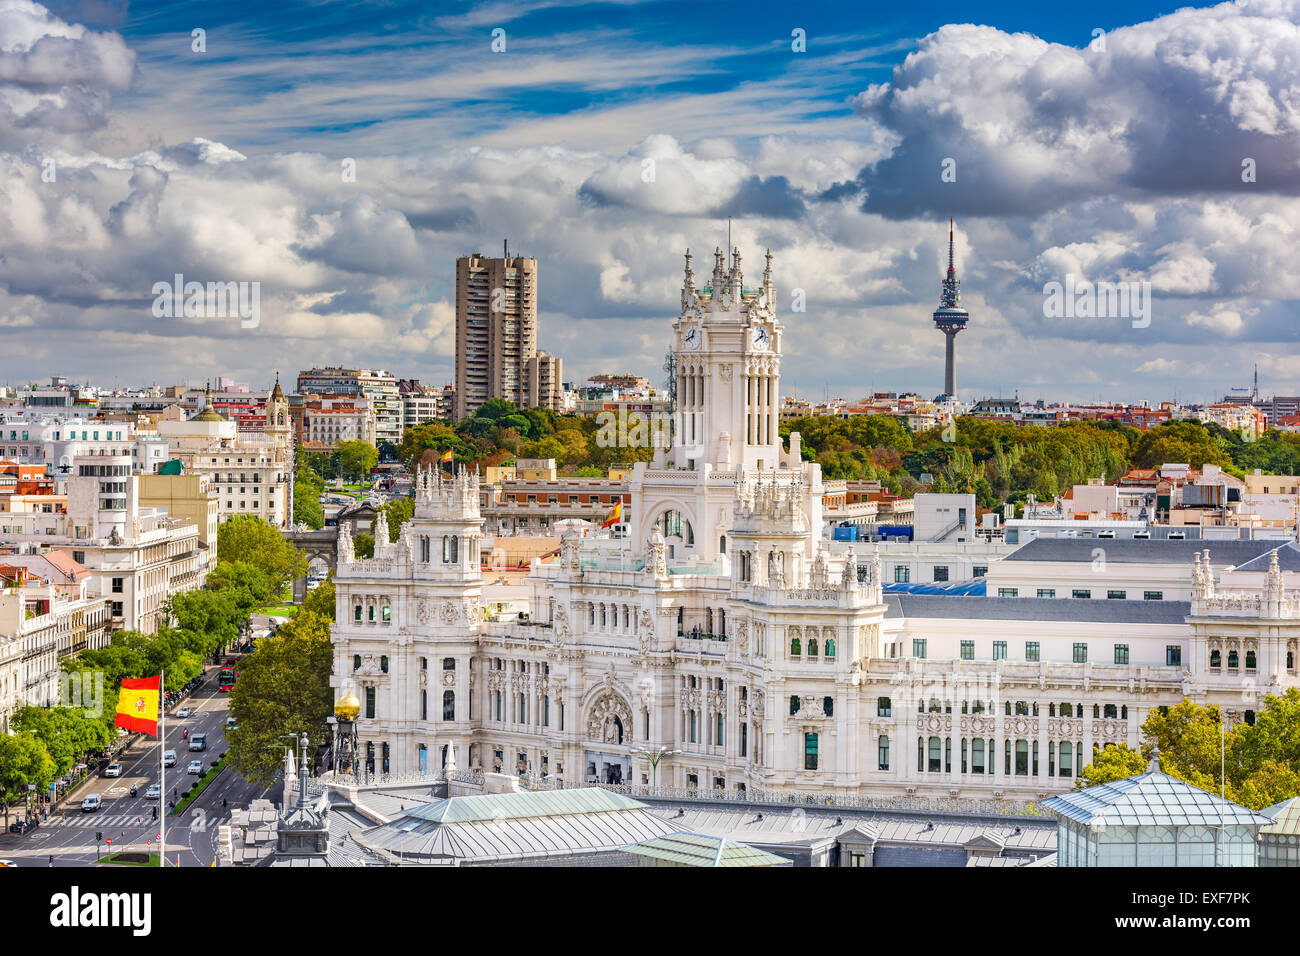 Madrid, Spain cityscape with Communication Palace and Torrespana Tower. - Stock Image